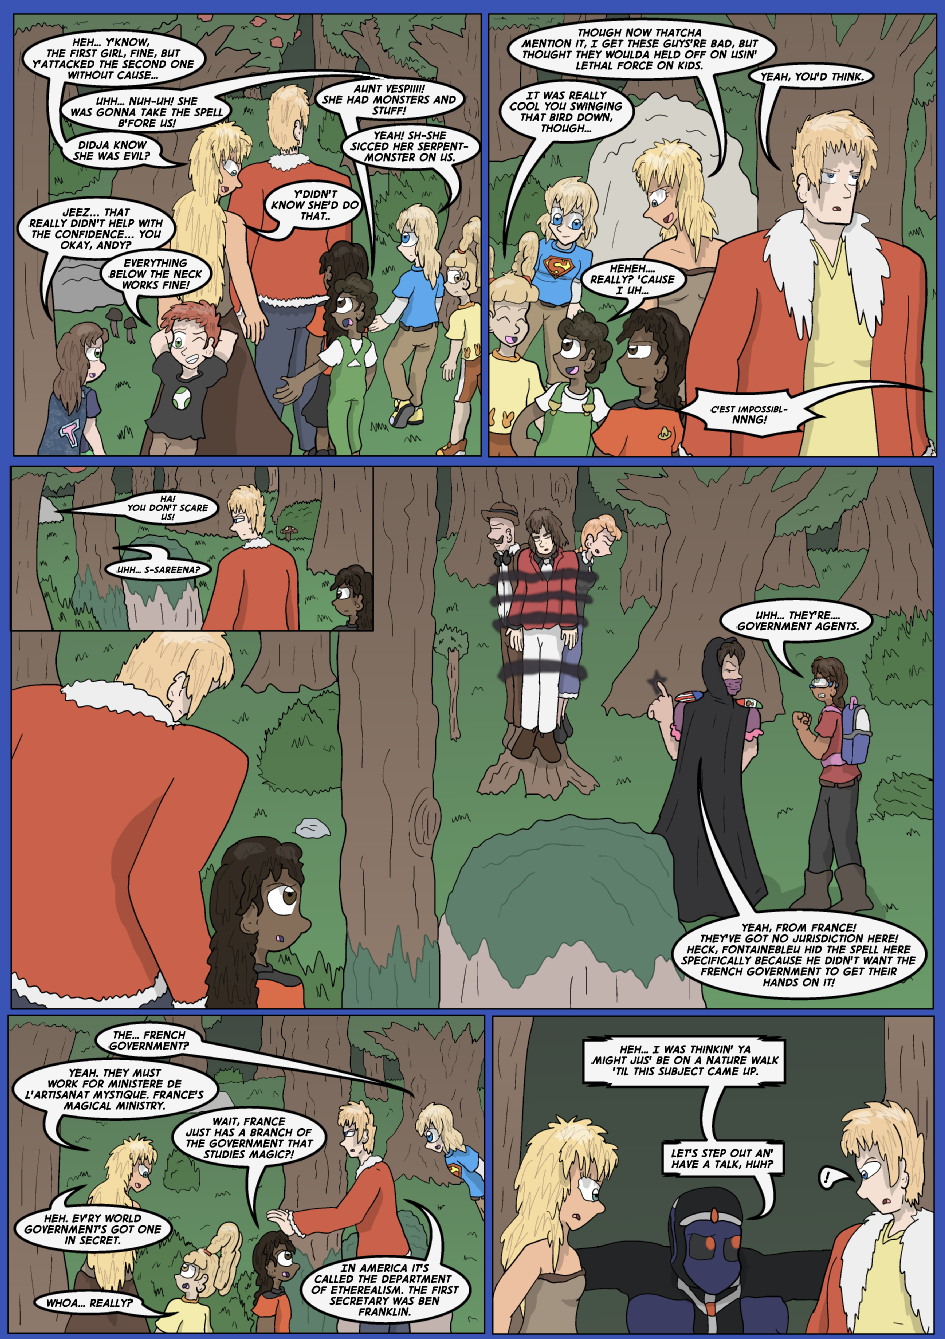 The Lost Spell of Baron Fontainebleu, Page 10